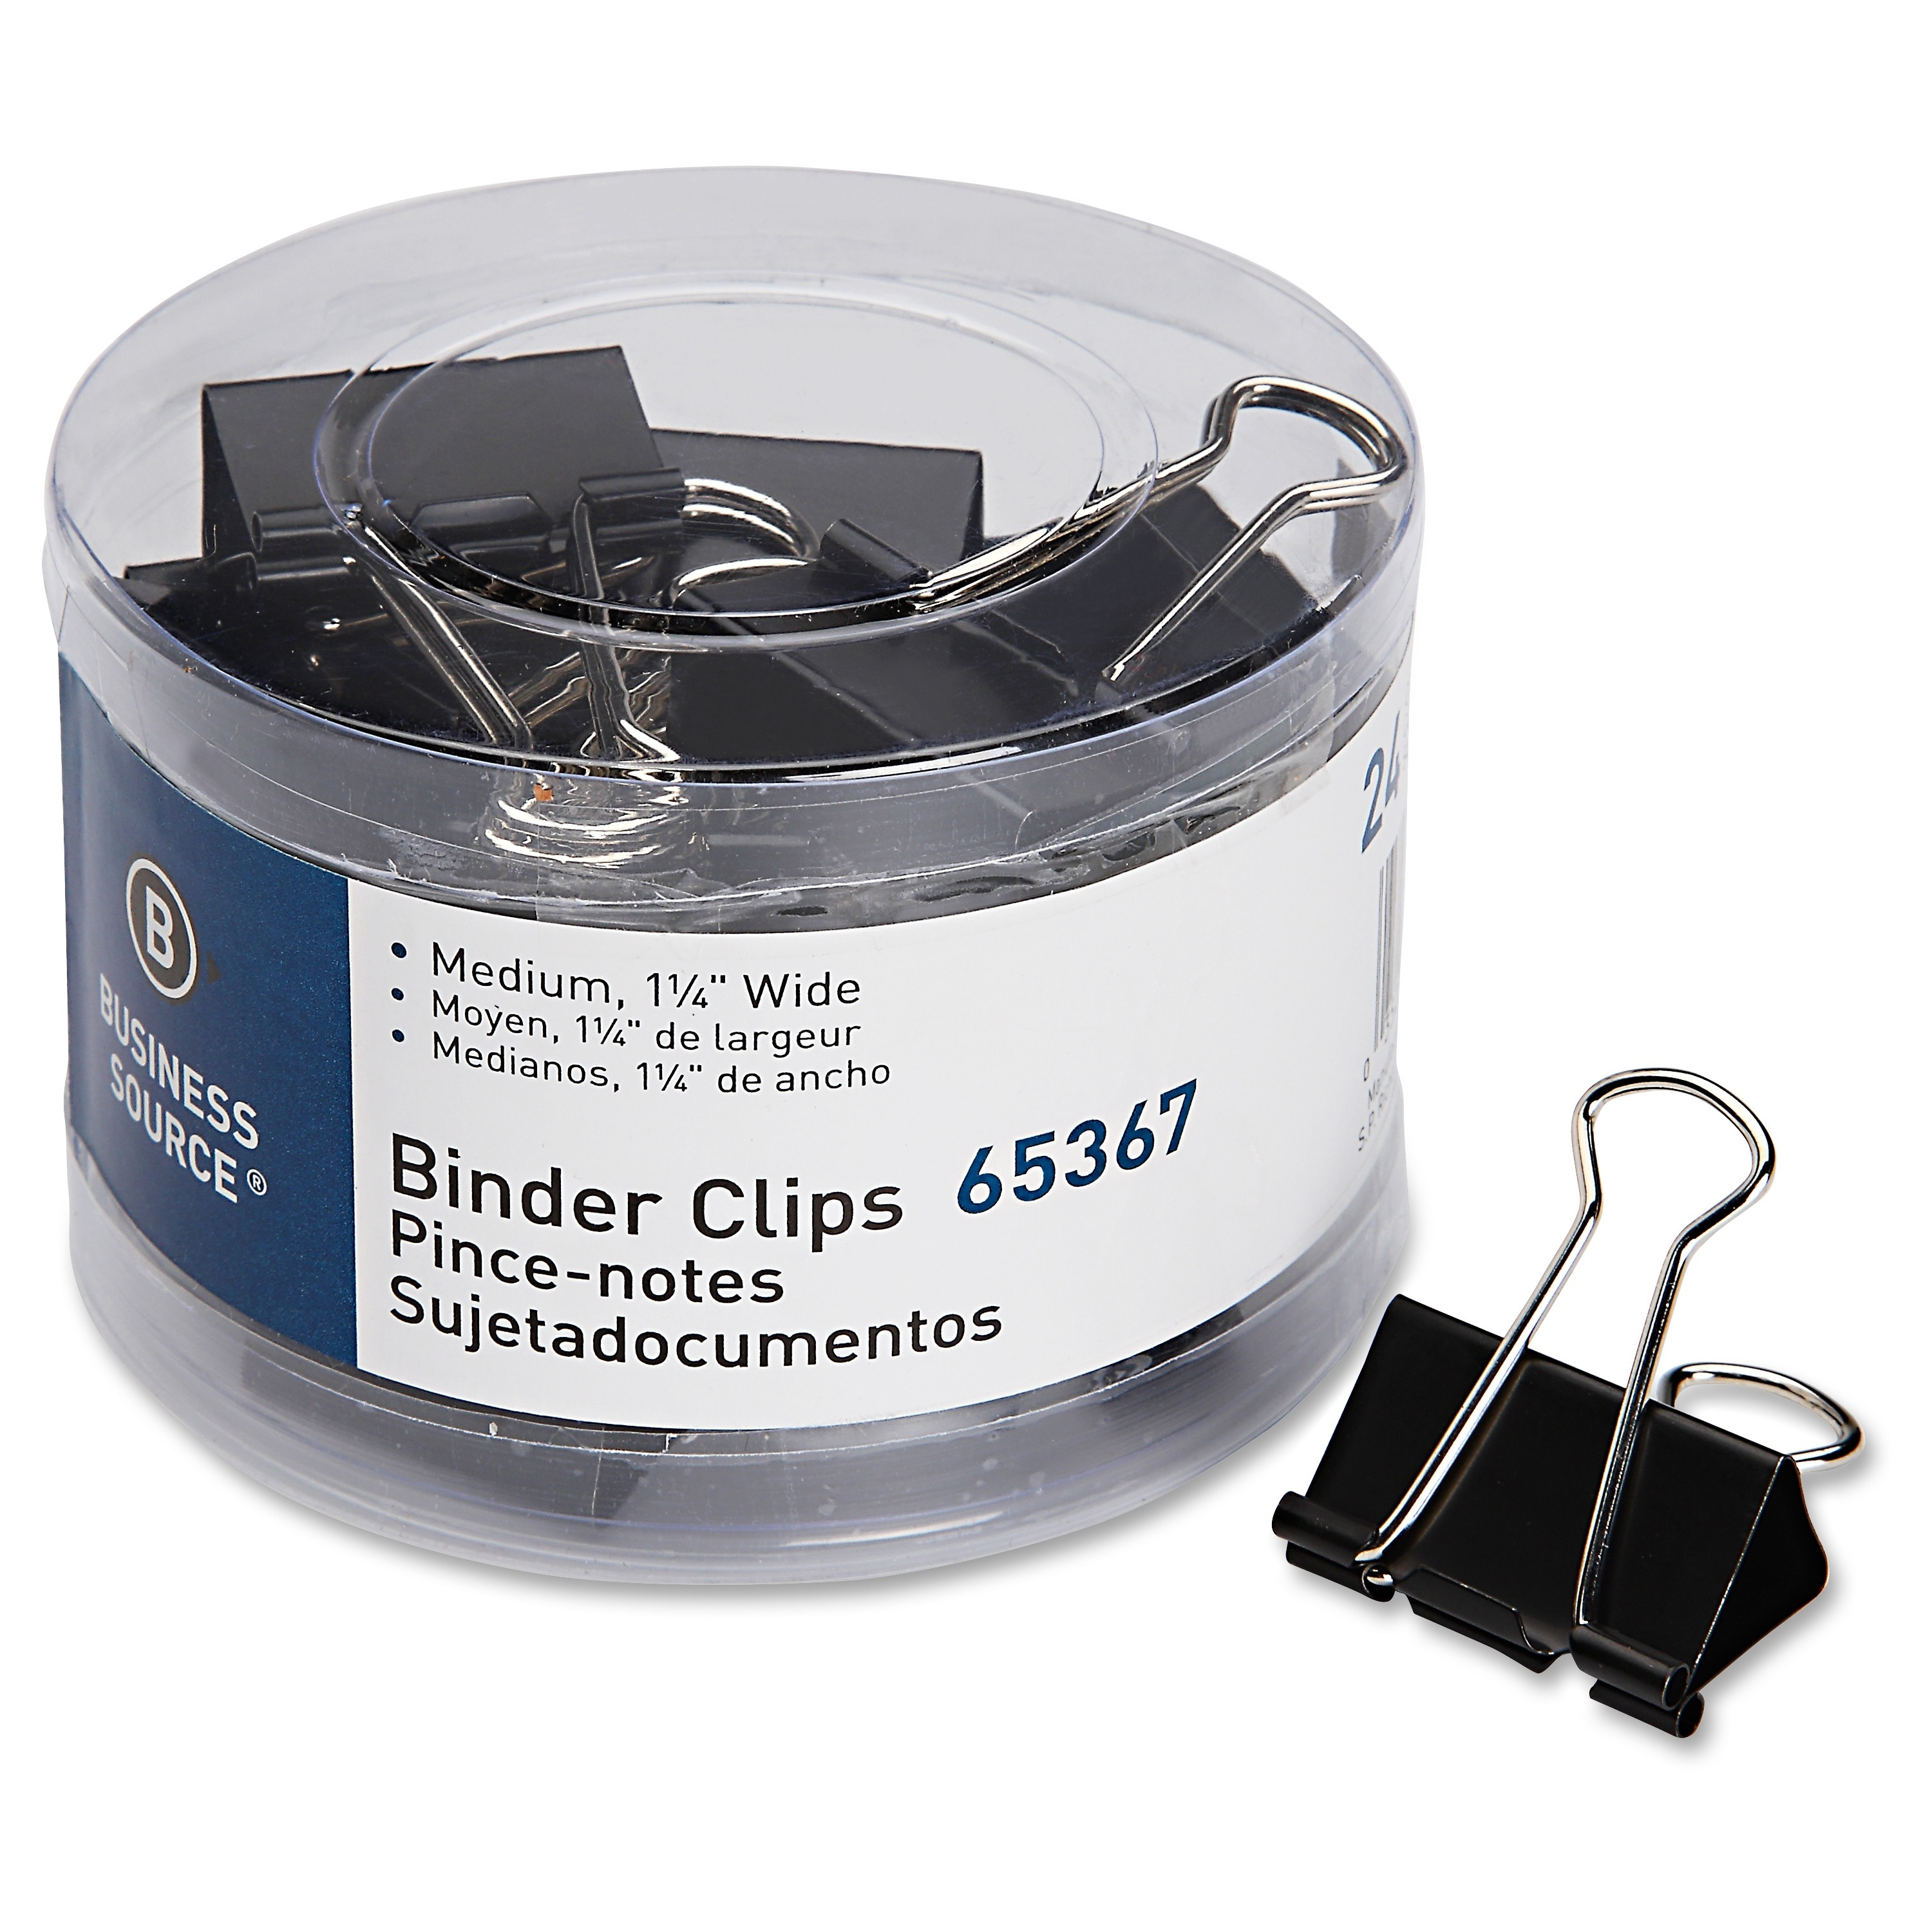 Business Source Medium 24-count Binder Clips - Medium - 24 / Pack - Black - Steel, Zinc (bsn-65367)